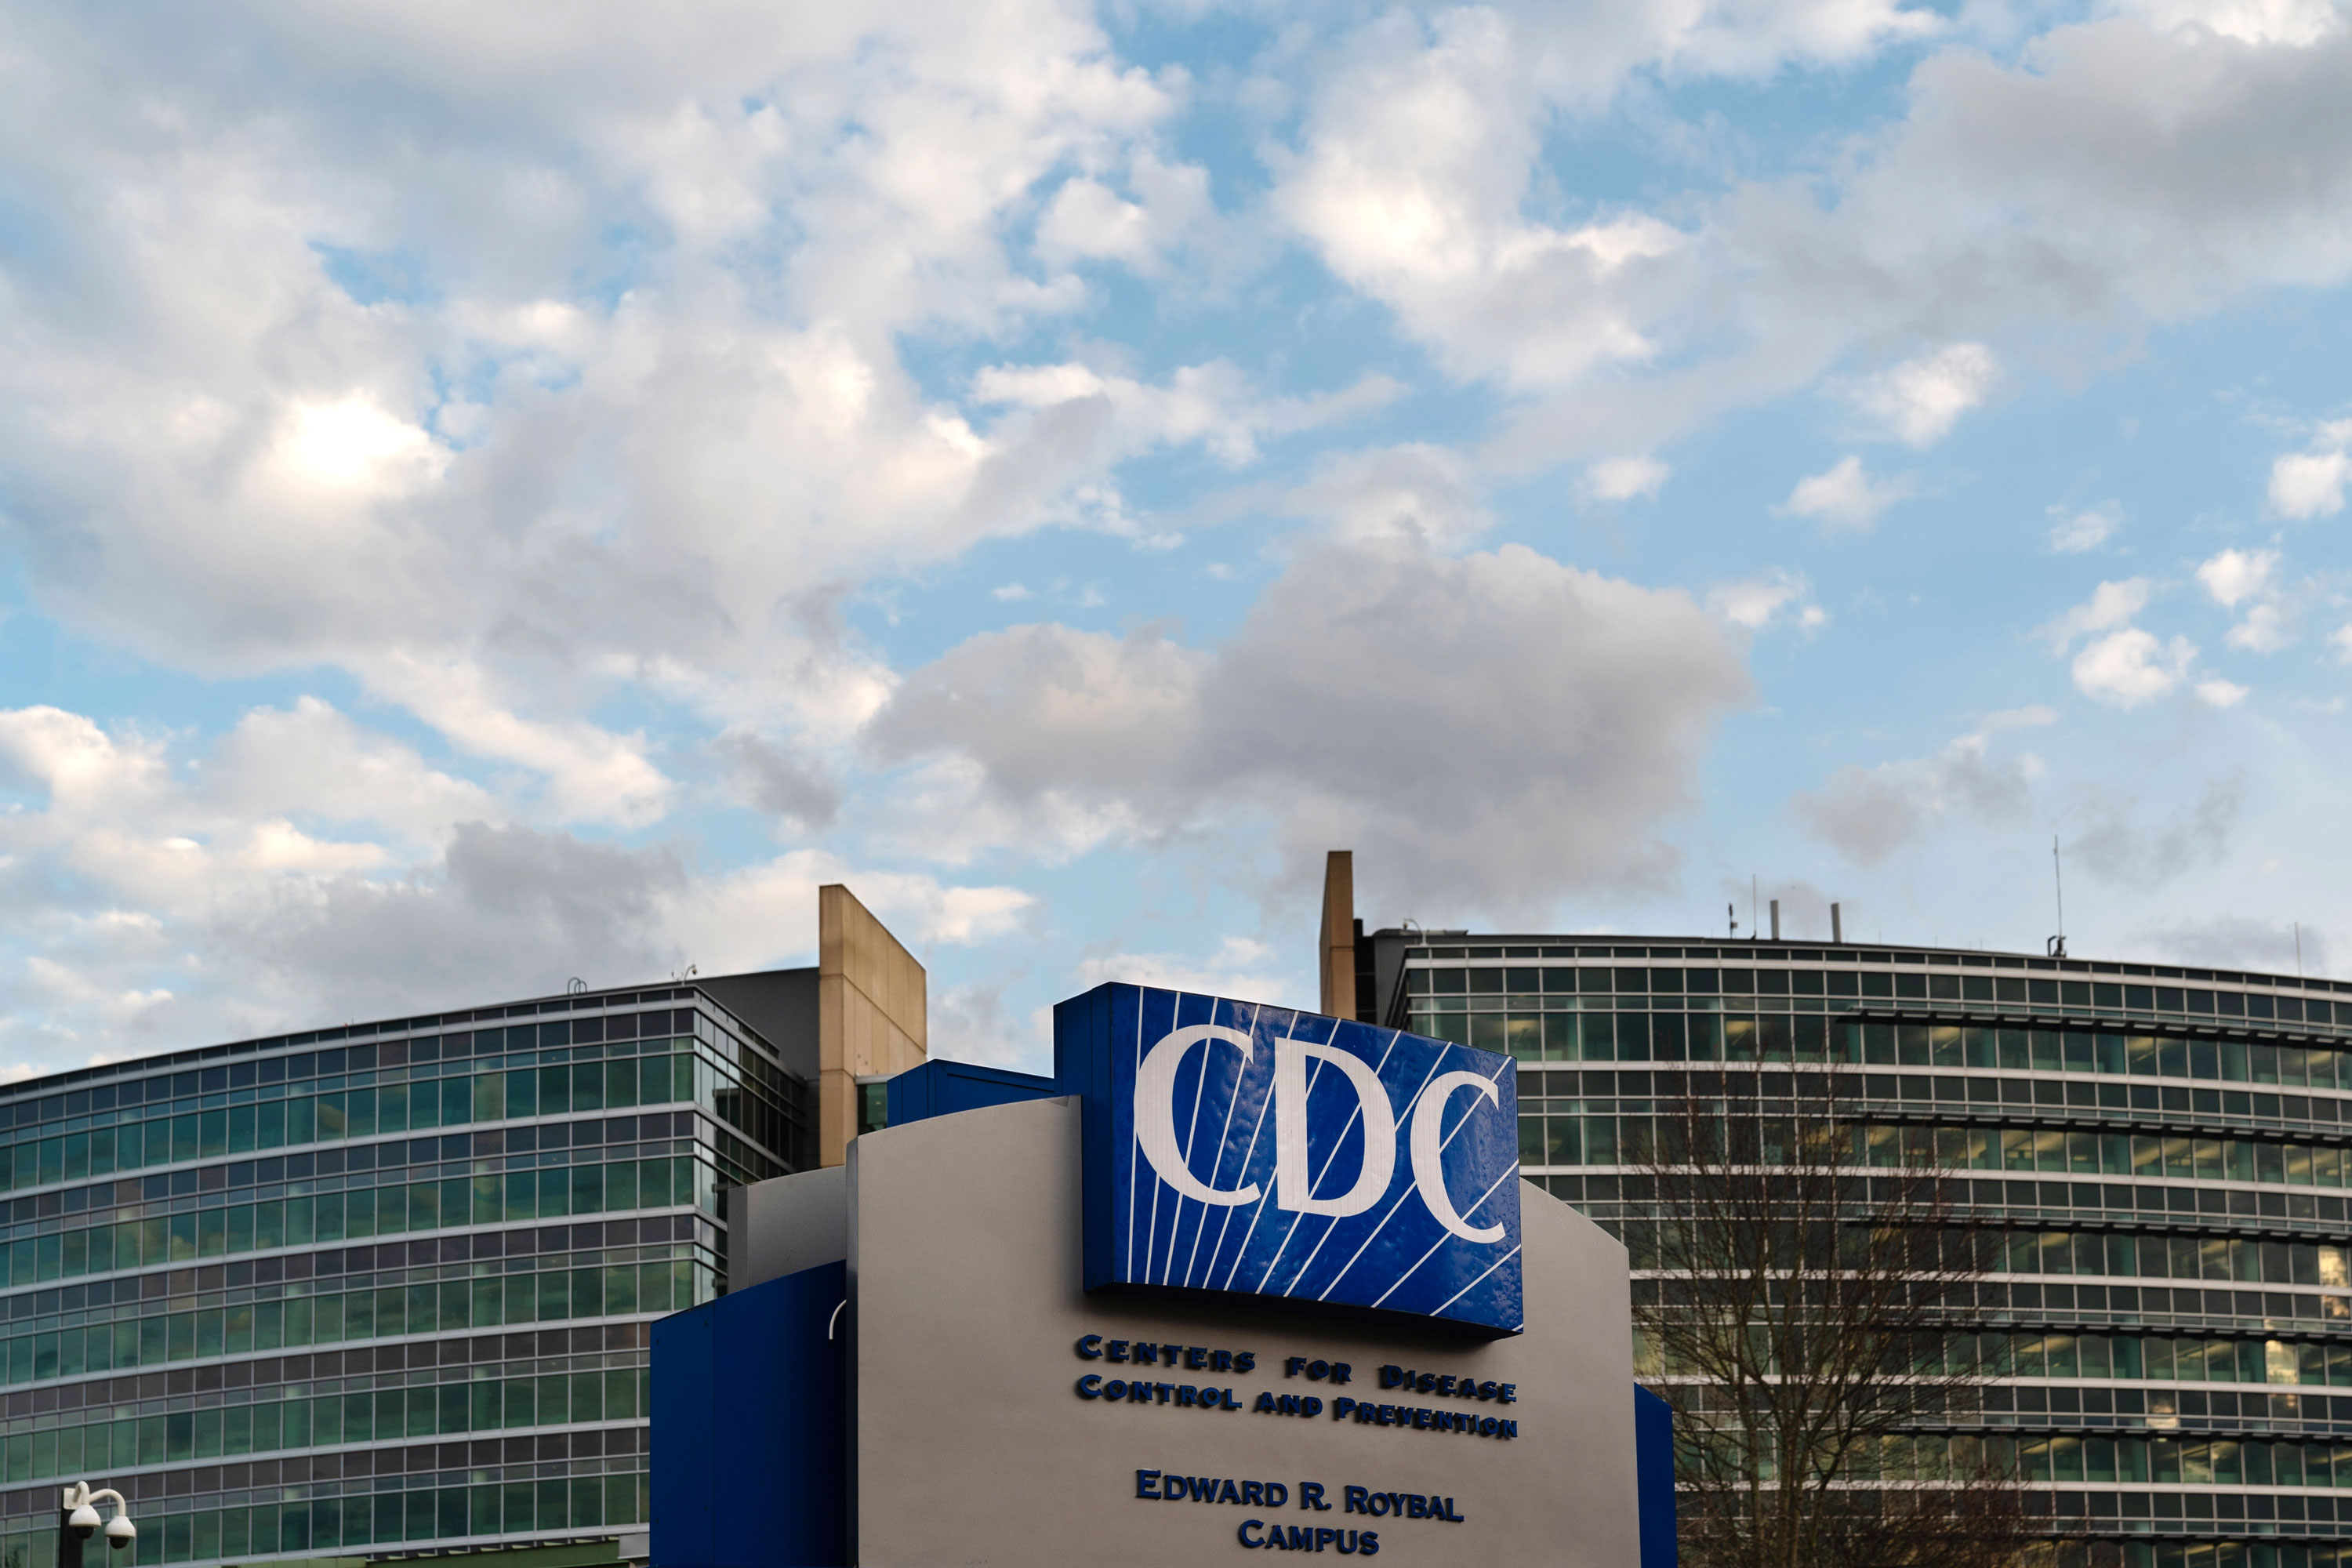 CDC warns not to swim with diarrhea, but all Twitter can focus on is the gif the agency used